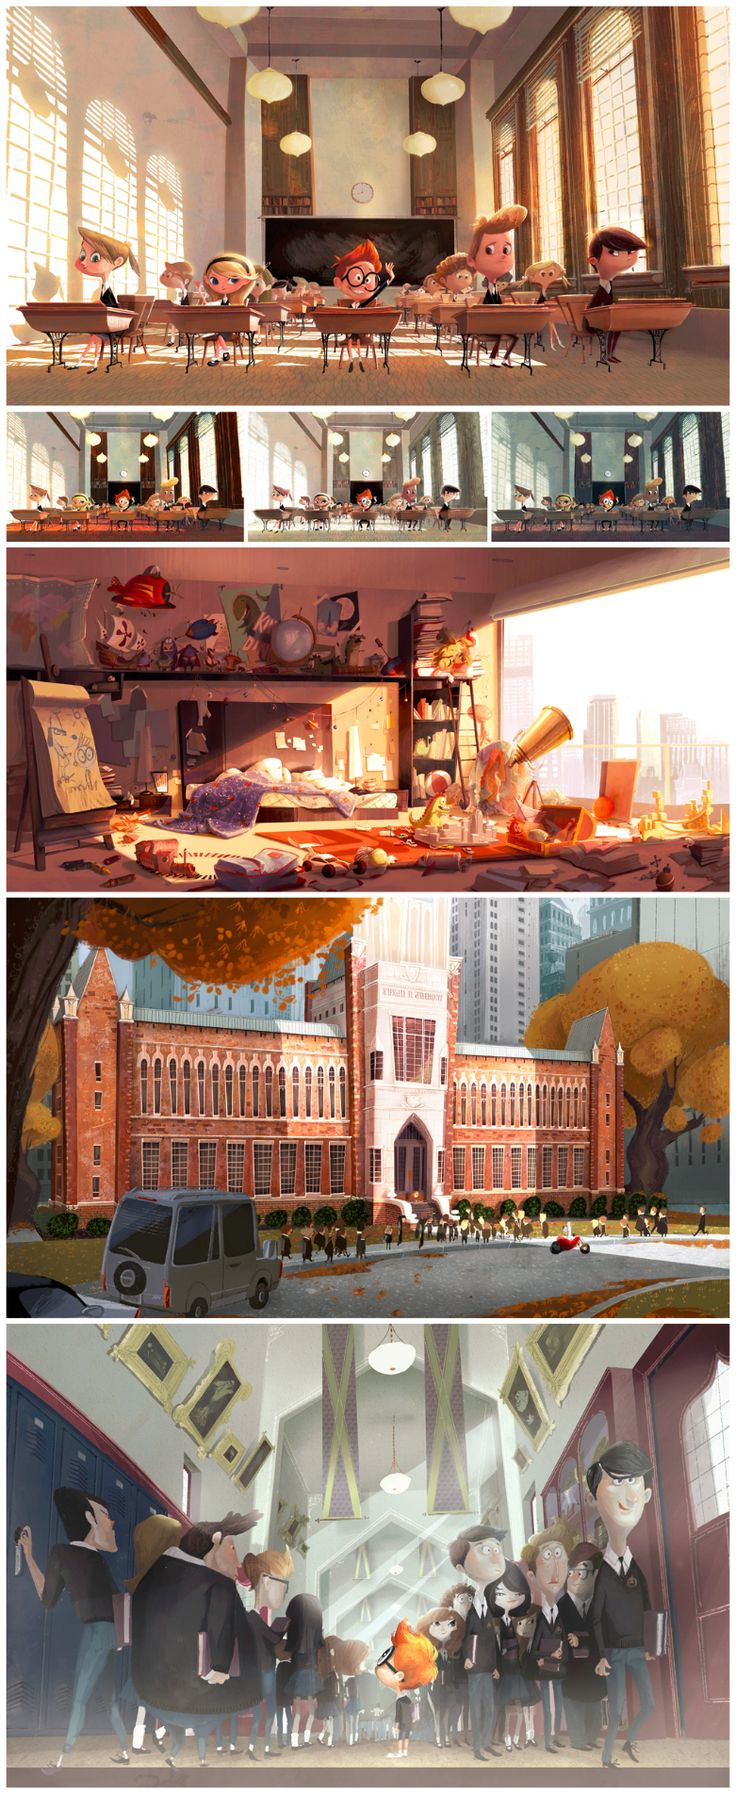 Priscilla Wong - Mr. Peabody & Sherman concept art